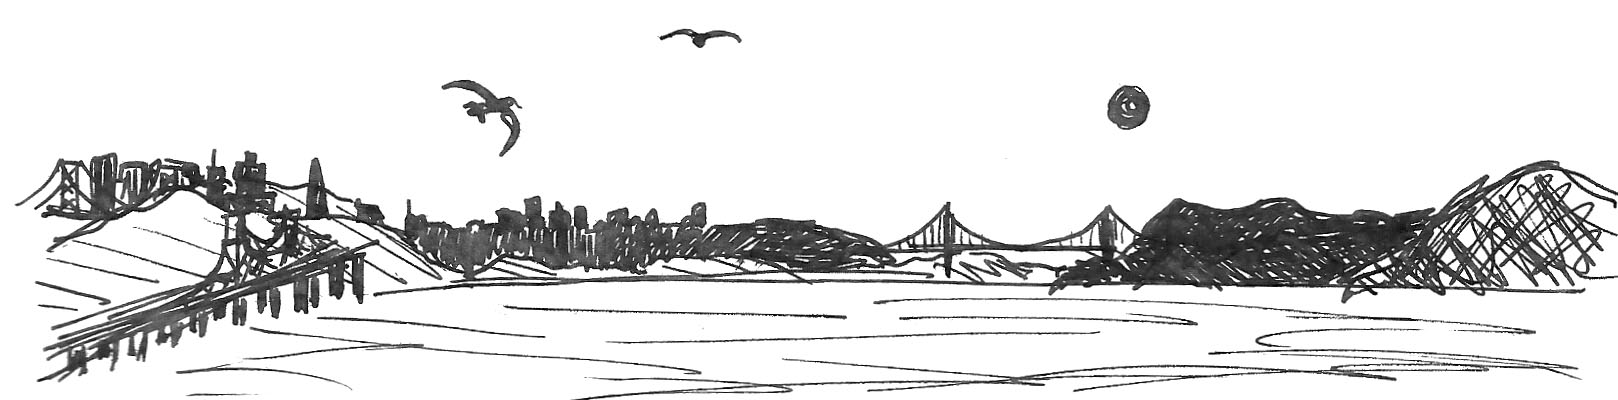 san francisco drawing